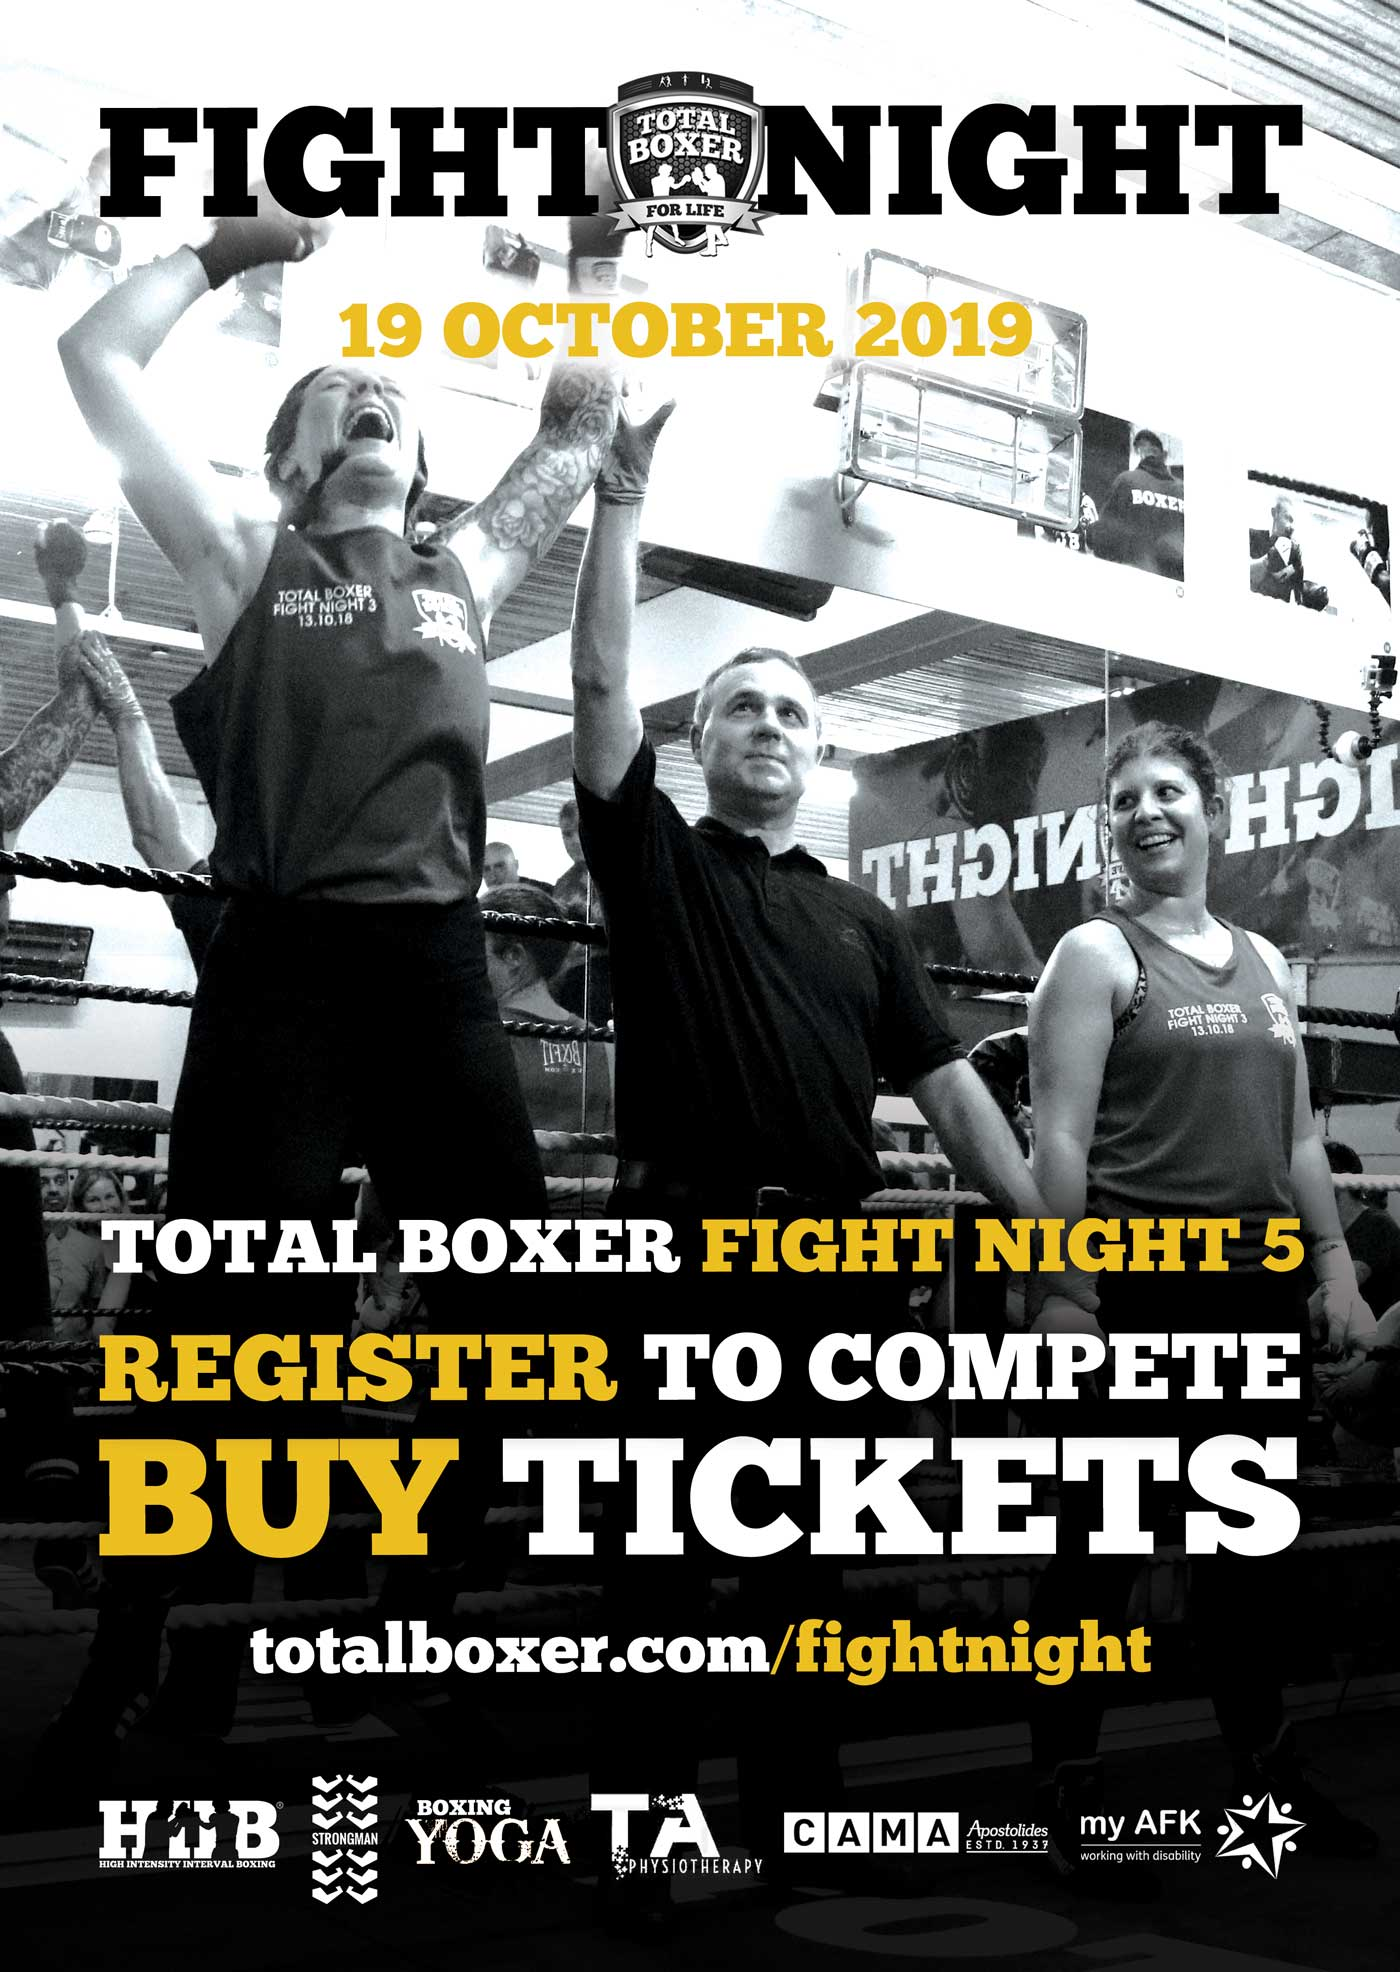 Fight-Night-5-Poster-Web.jpg